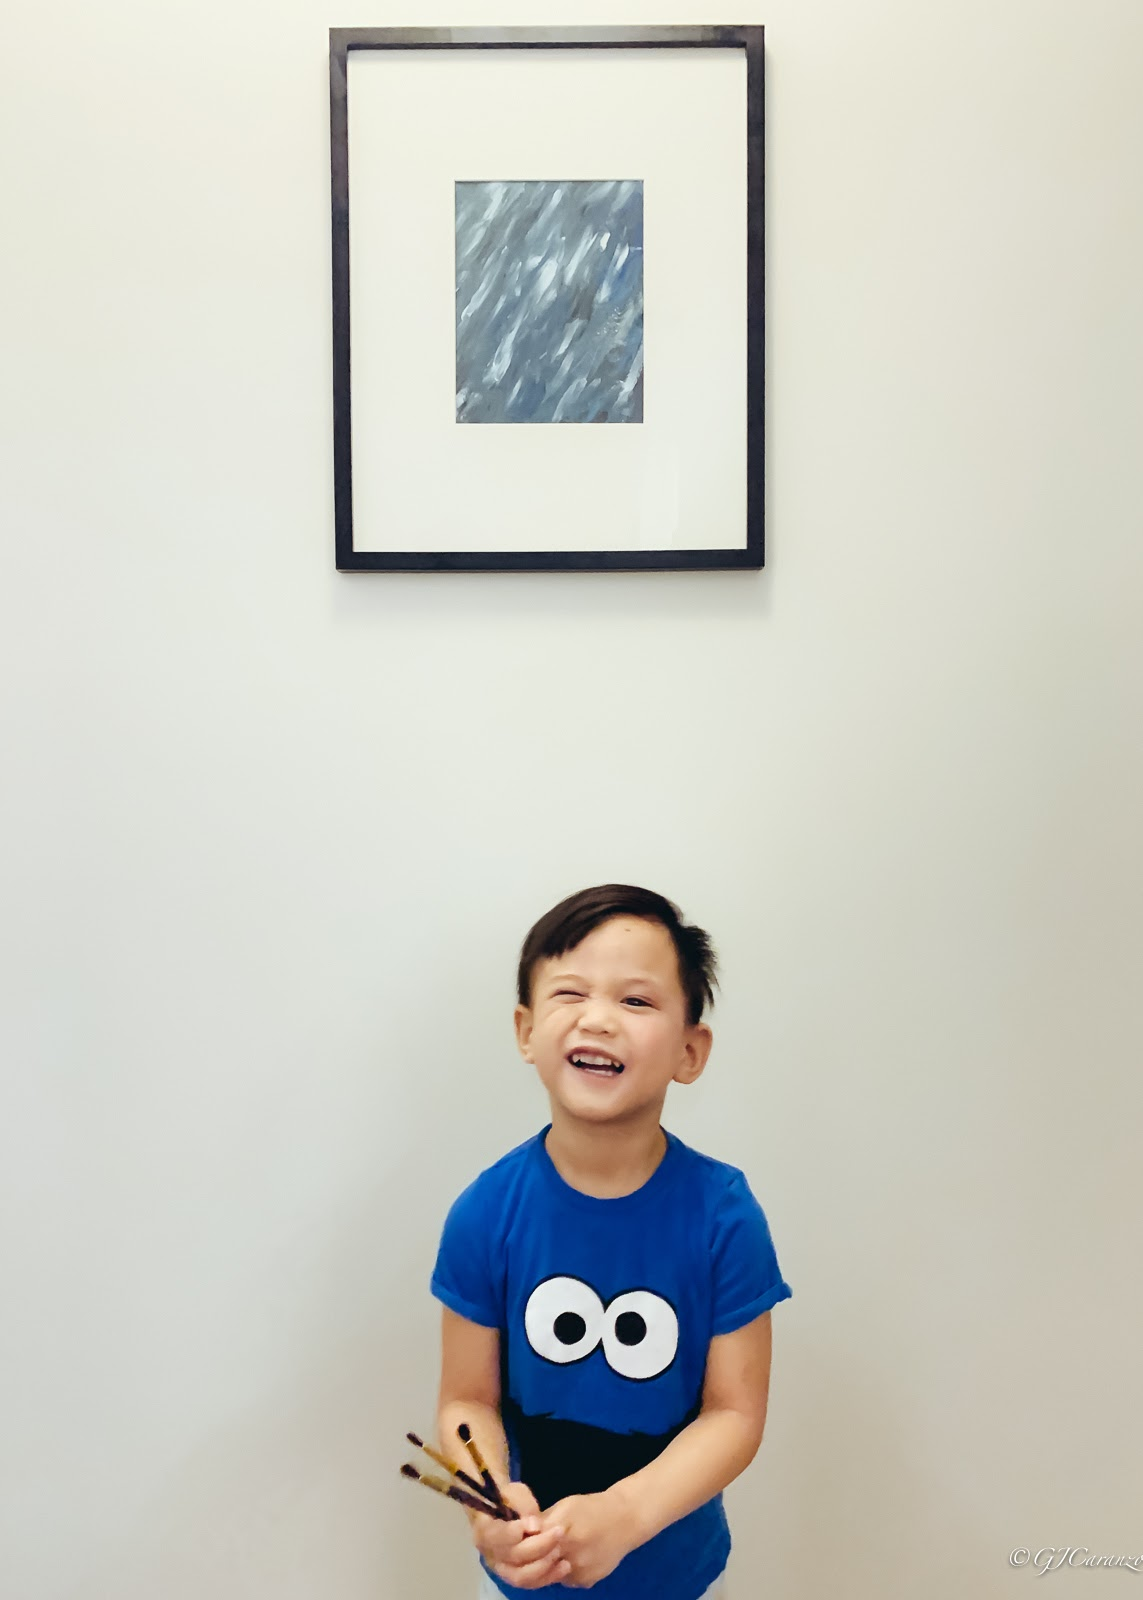 Easy Wall Art Project Kids Could Do